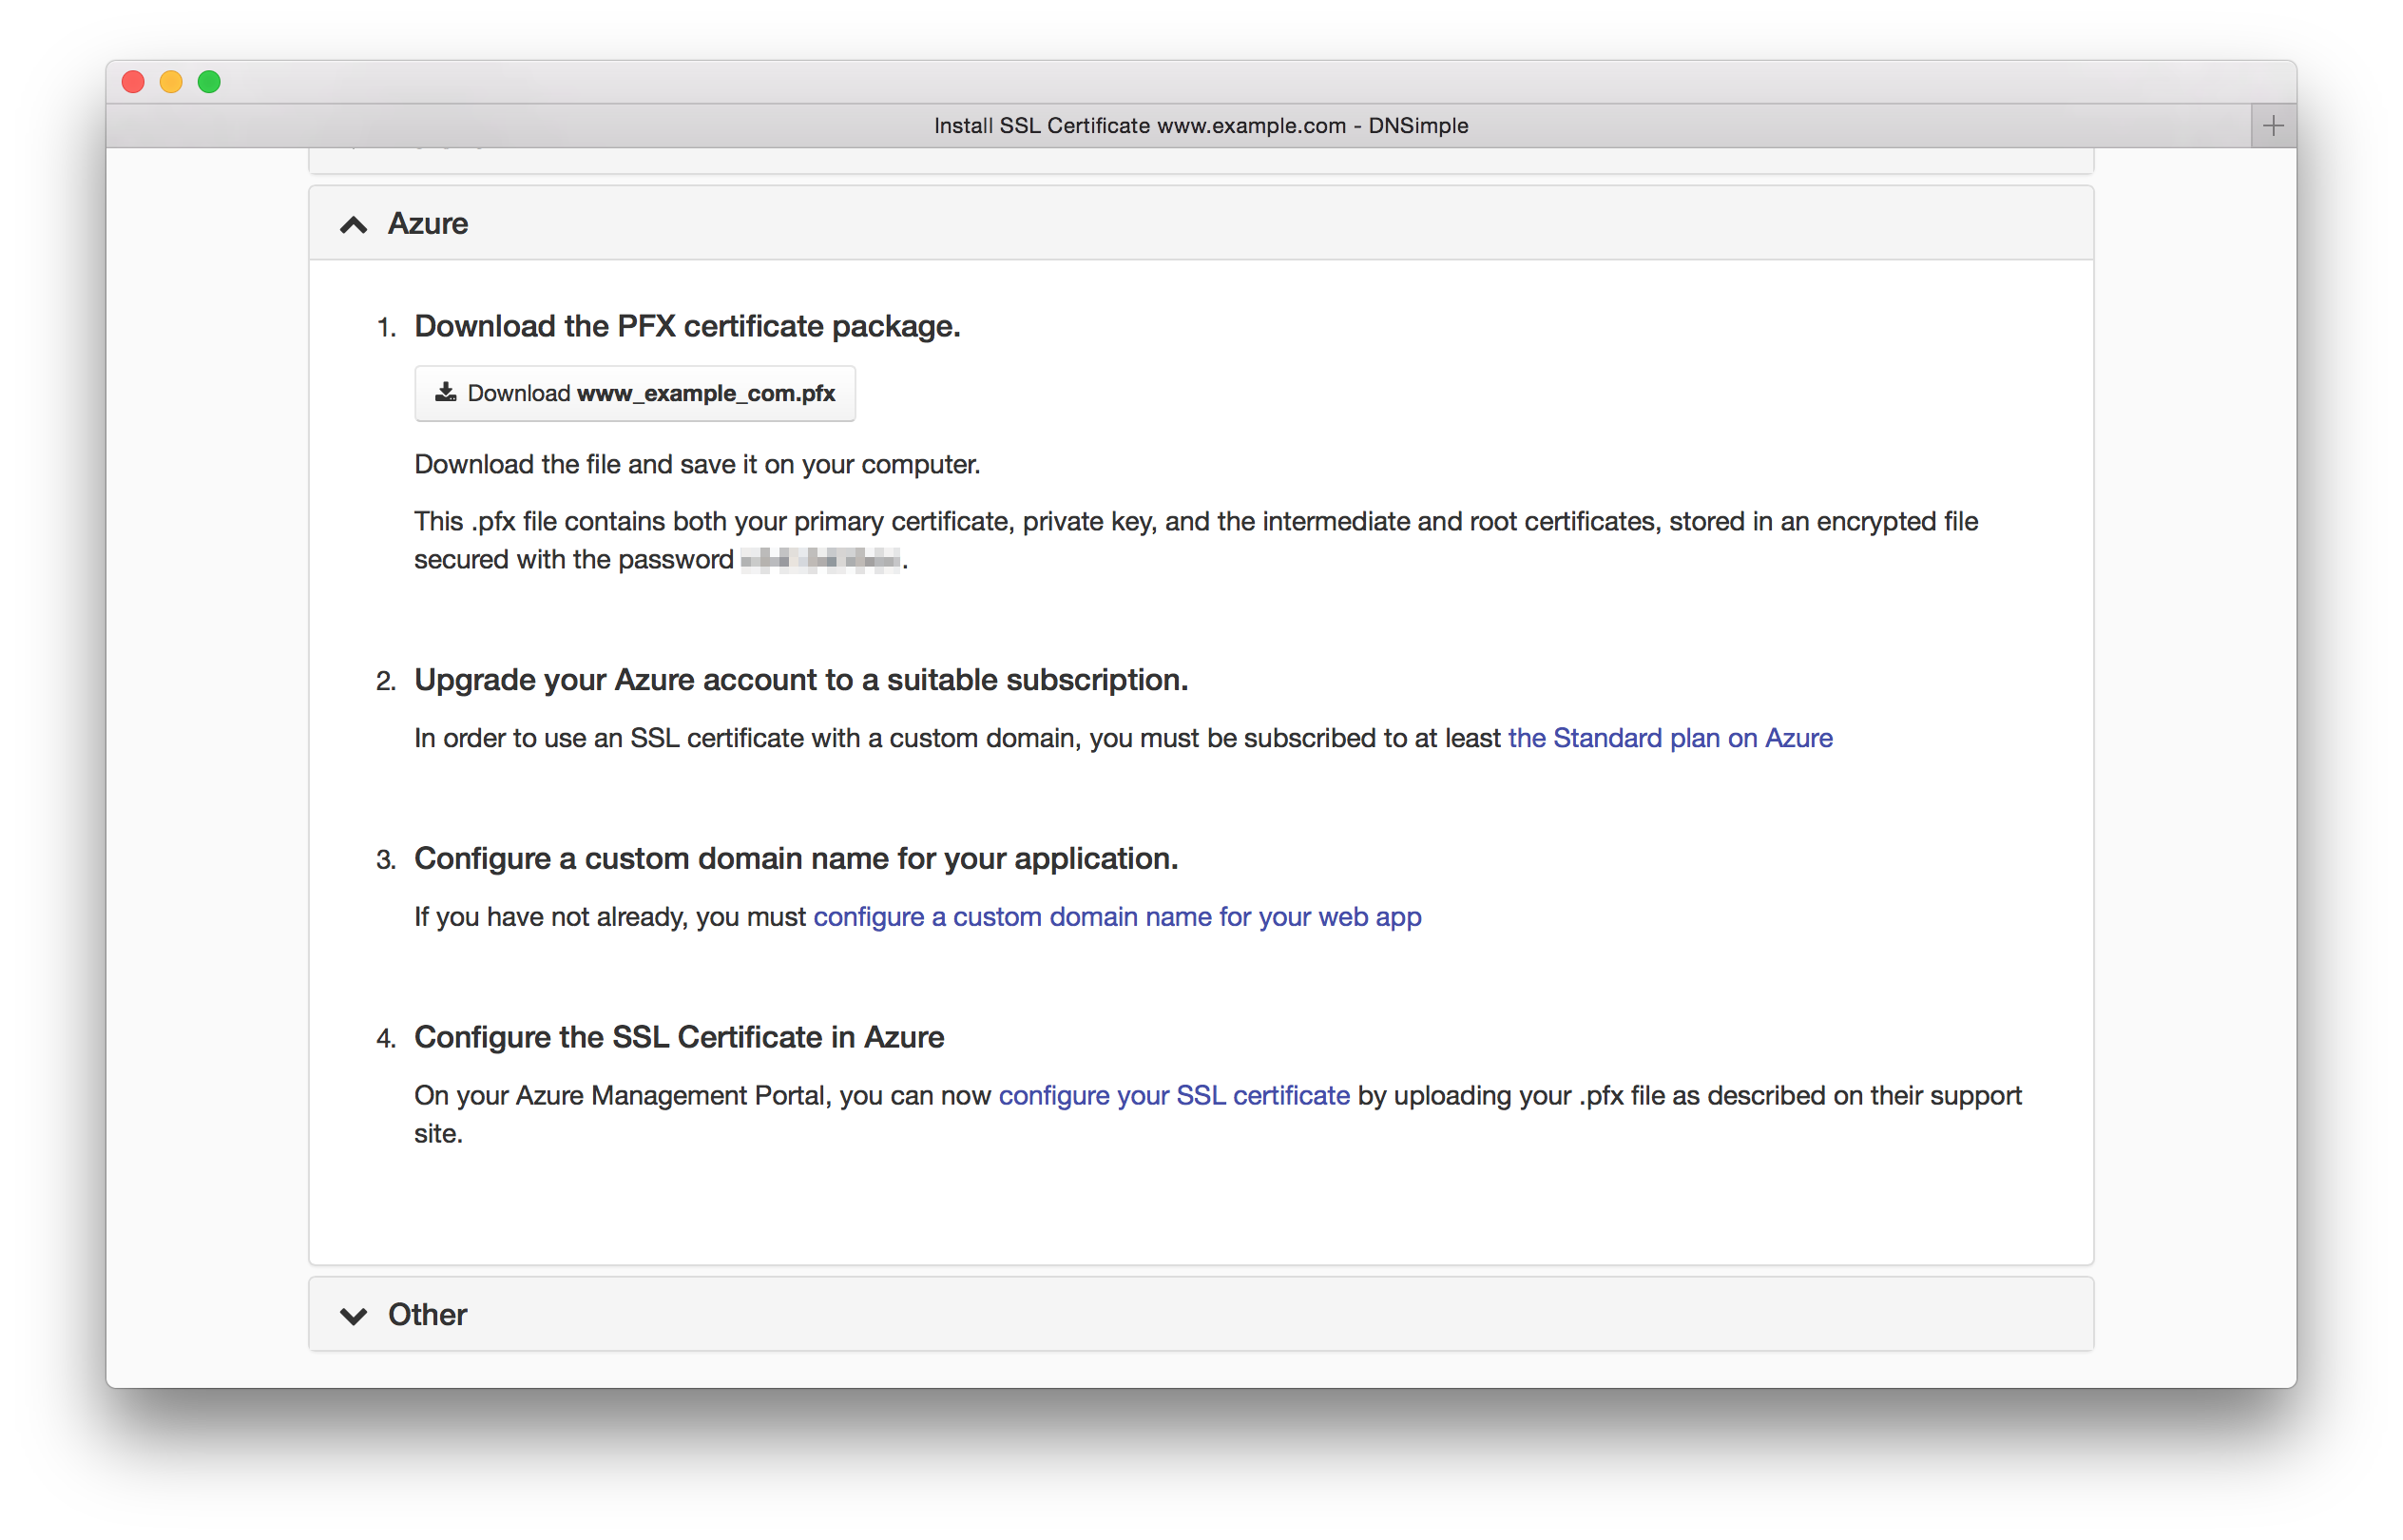 Announcing Ssl Installation Instructions For Azure Dnsimple Blog